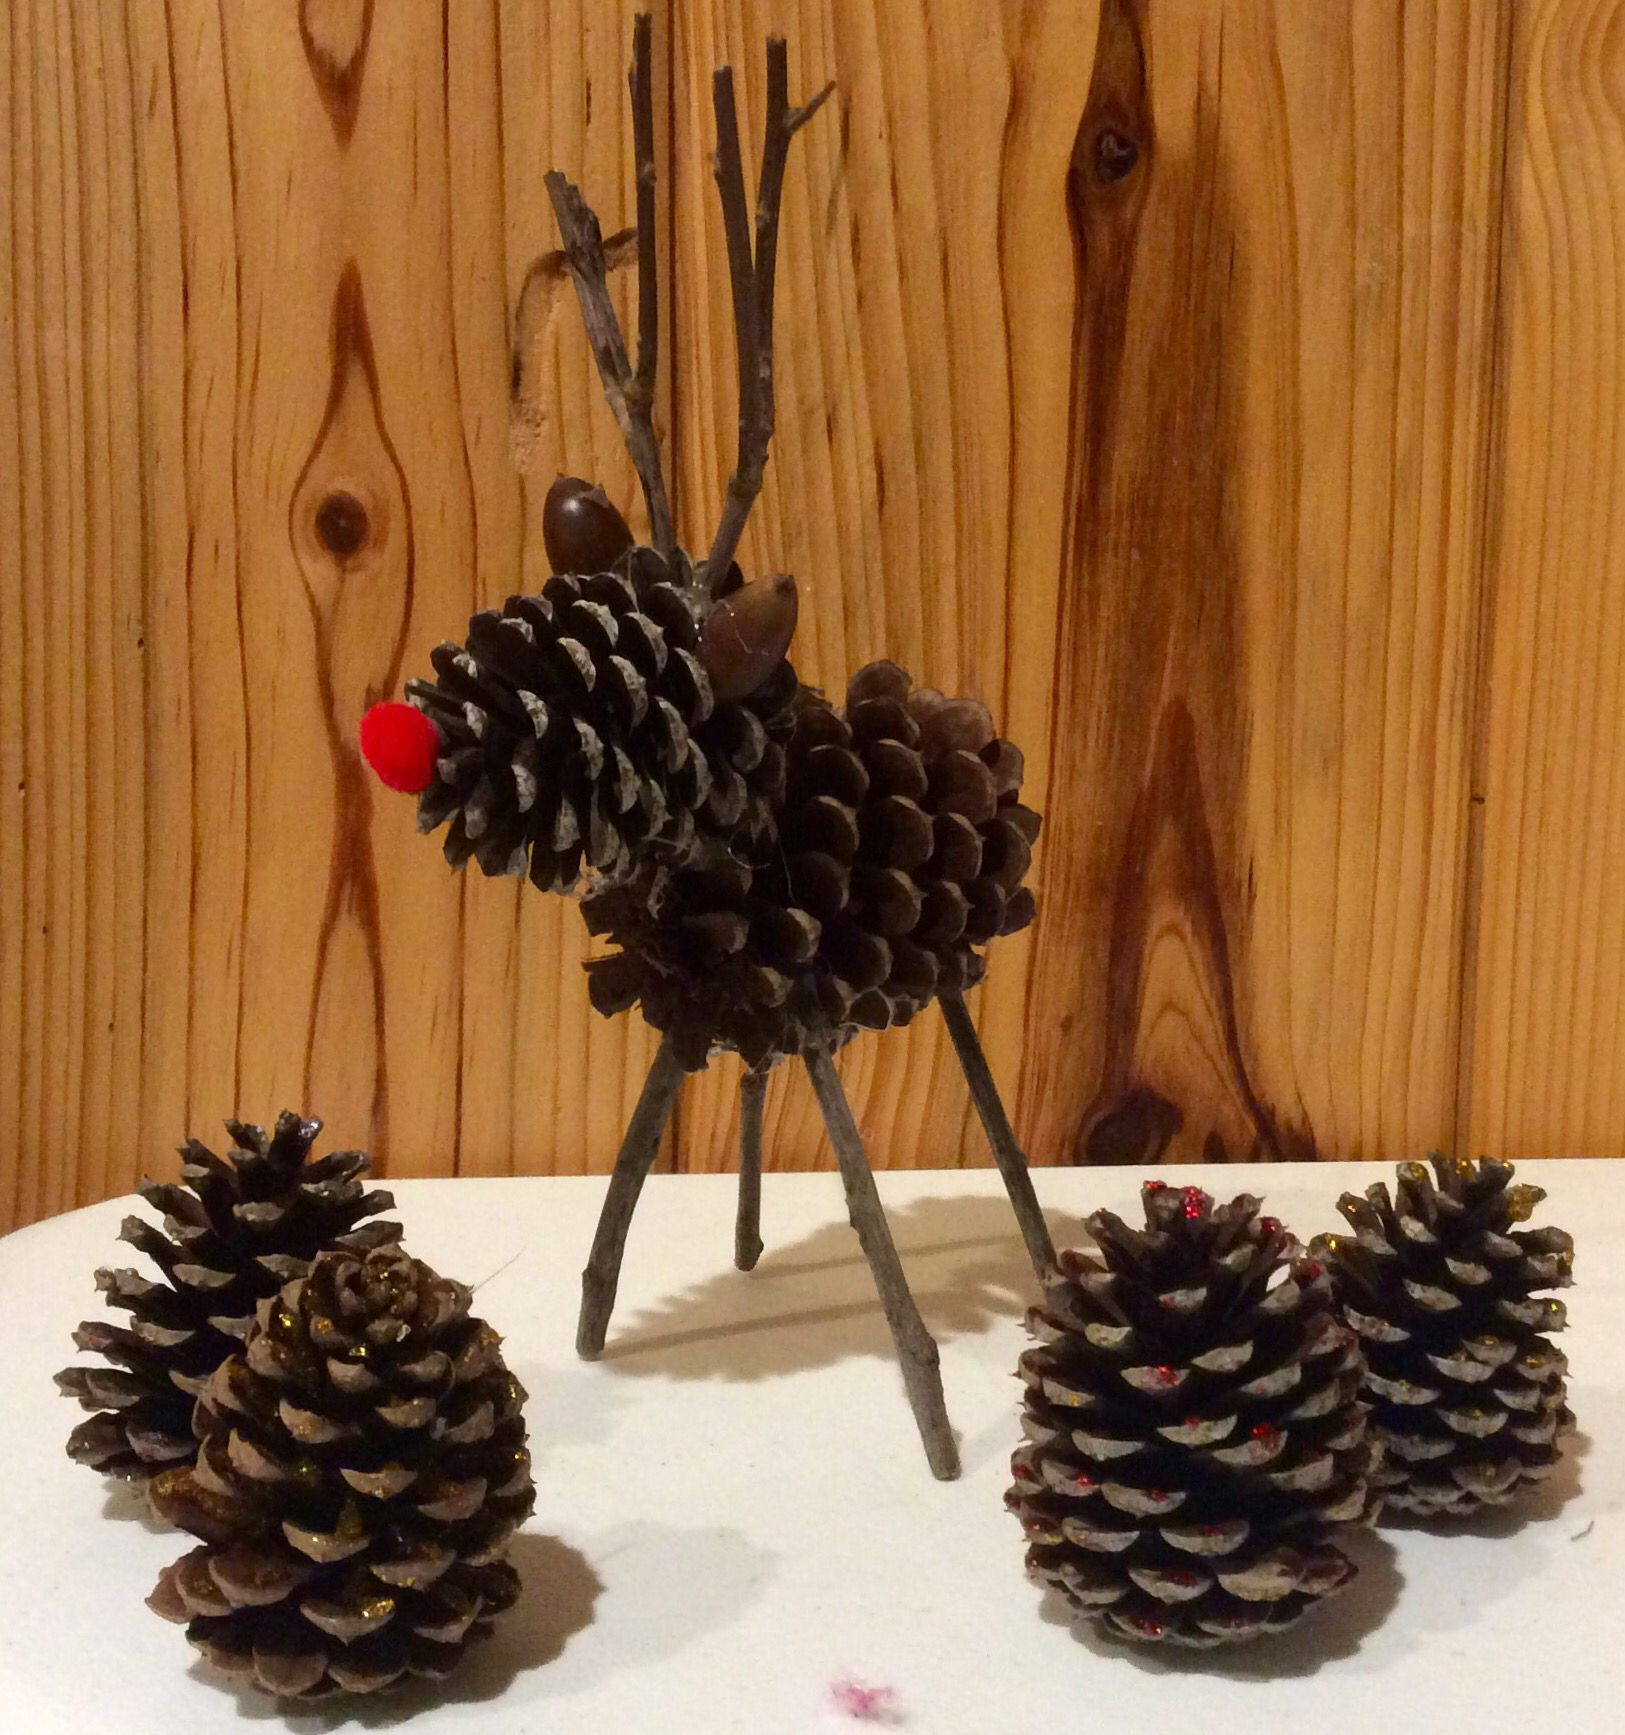 Pinecone reindeer pine cones pinterest pinecone for Pine cone crafts for children